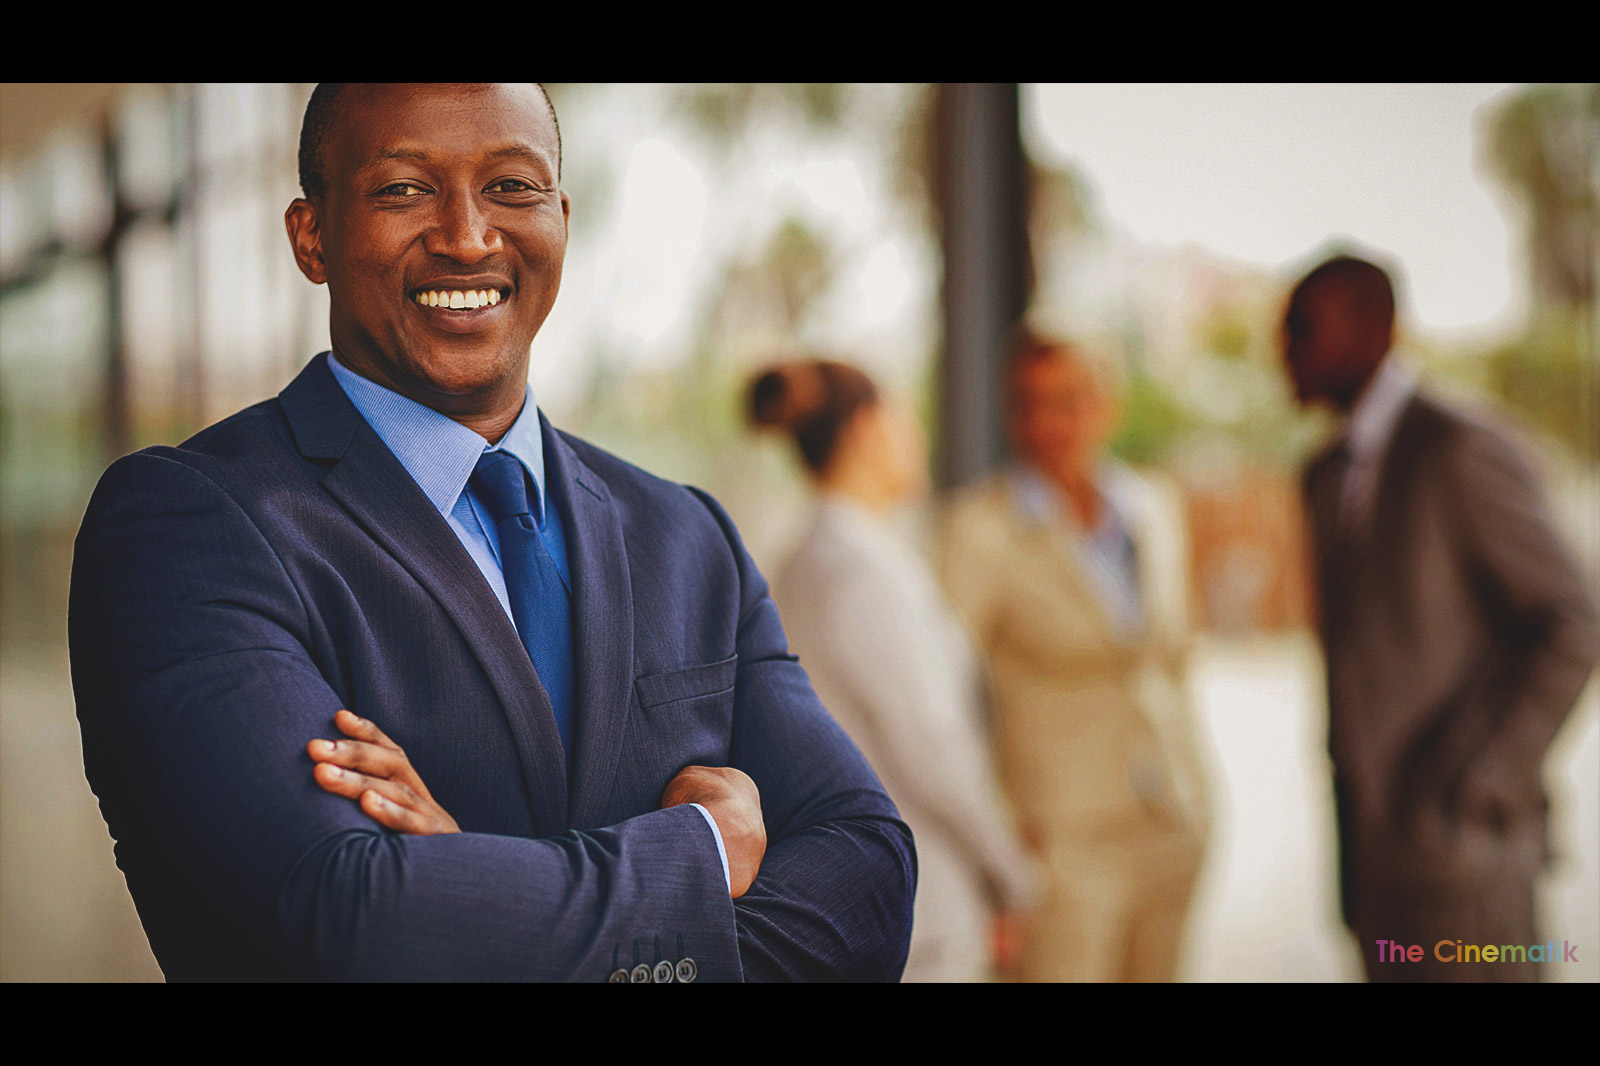 Young black successful smiling executive Cinematic corporate photography by Kamal Lahmadi/THE CINEMATIK